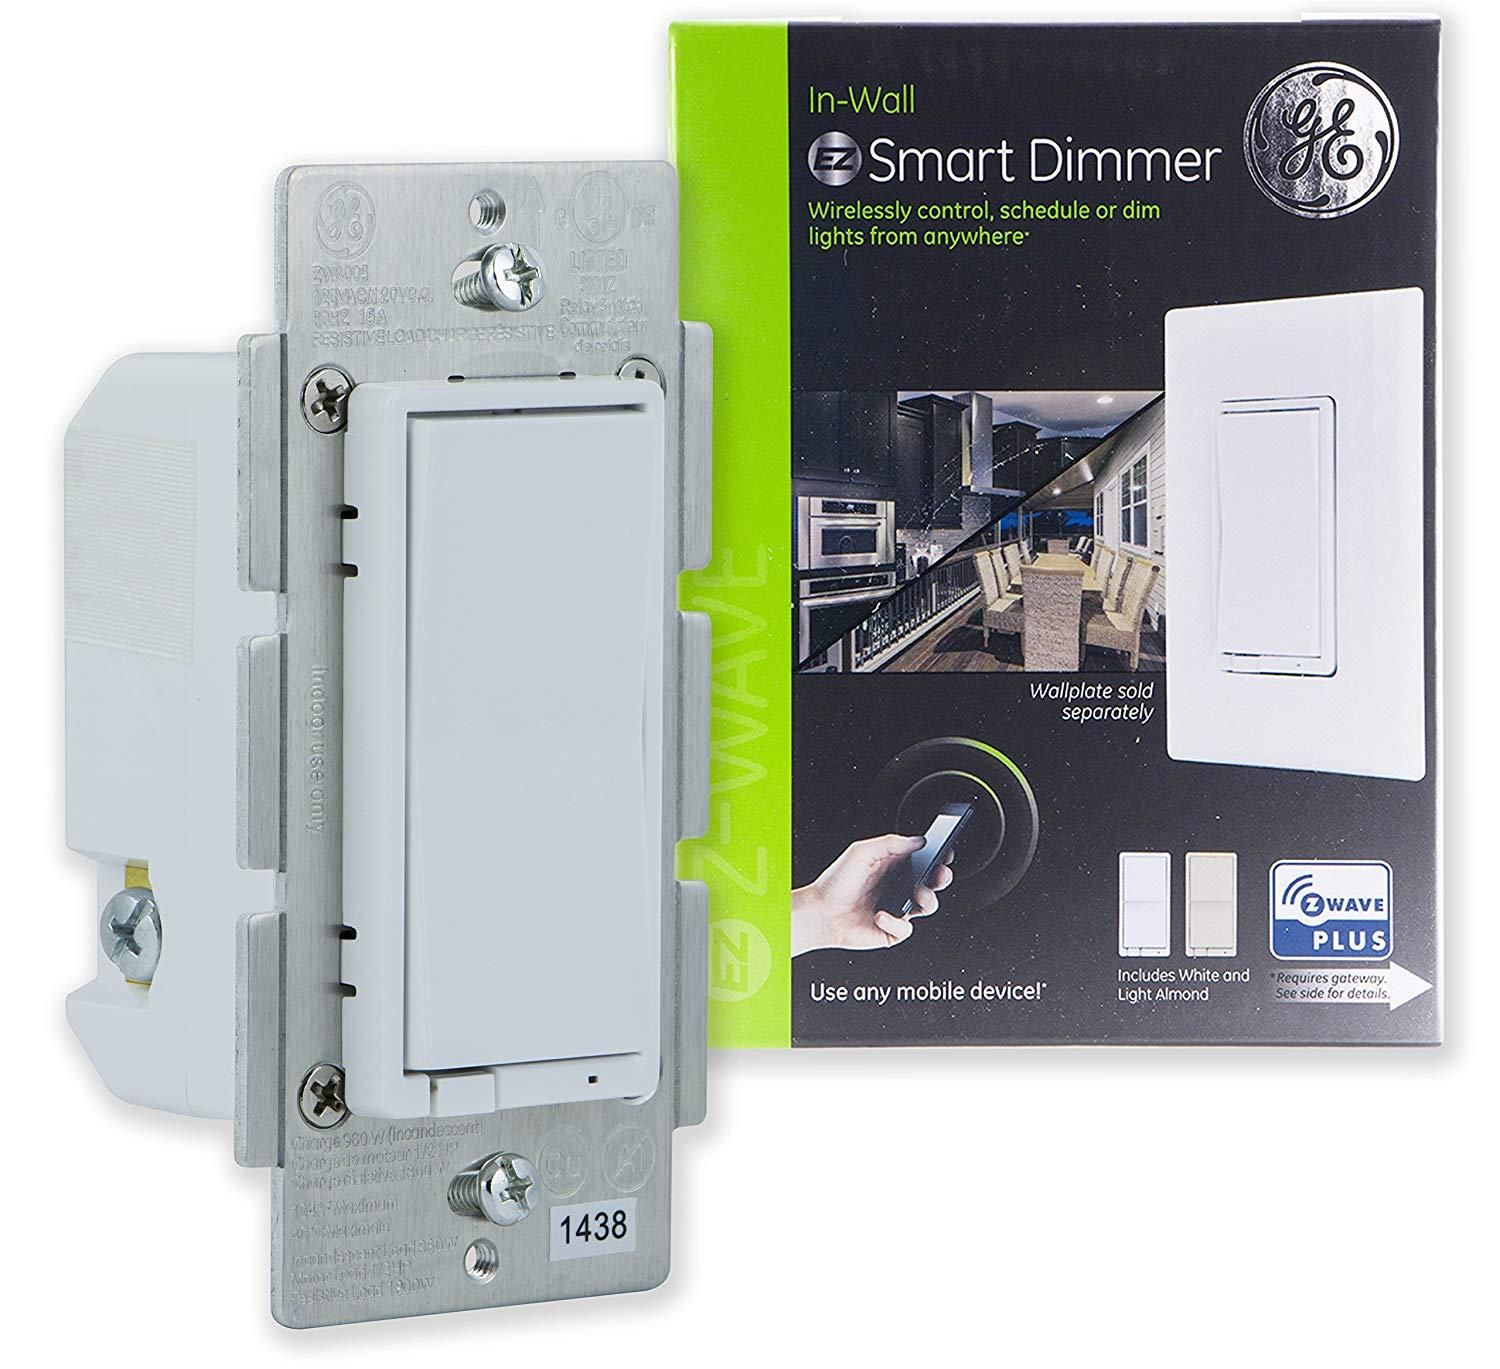 Ge Enbrighten Z Wave Plus Smart Dimmer Switch Full Dimming In Wall Incl White And Lt Almond Paddles Smart Lighting Smart Dimmer Switch Light Dimmer Switch